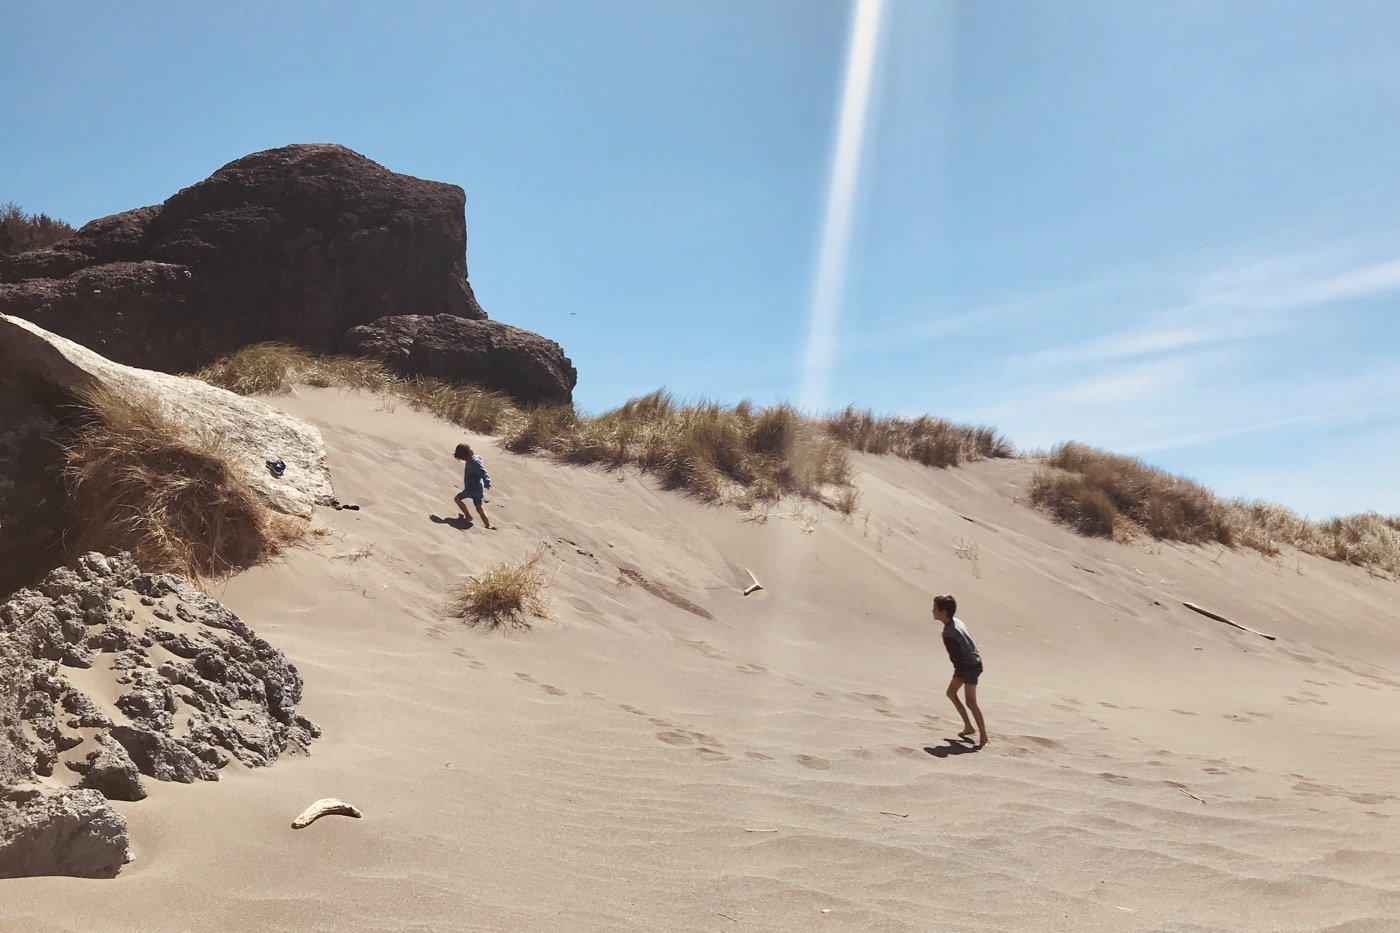 Kai and Heidi playing on the dunes.  Oregon coast.